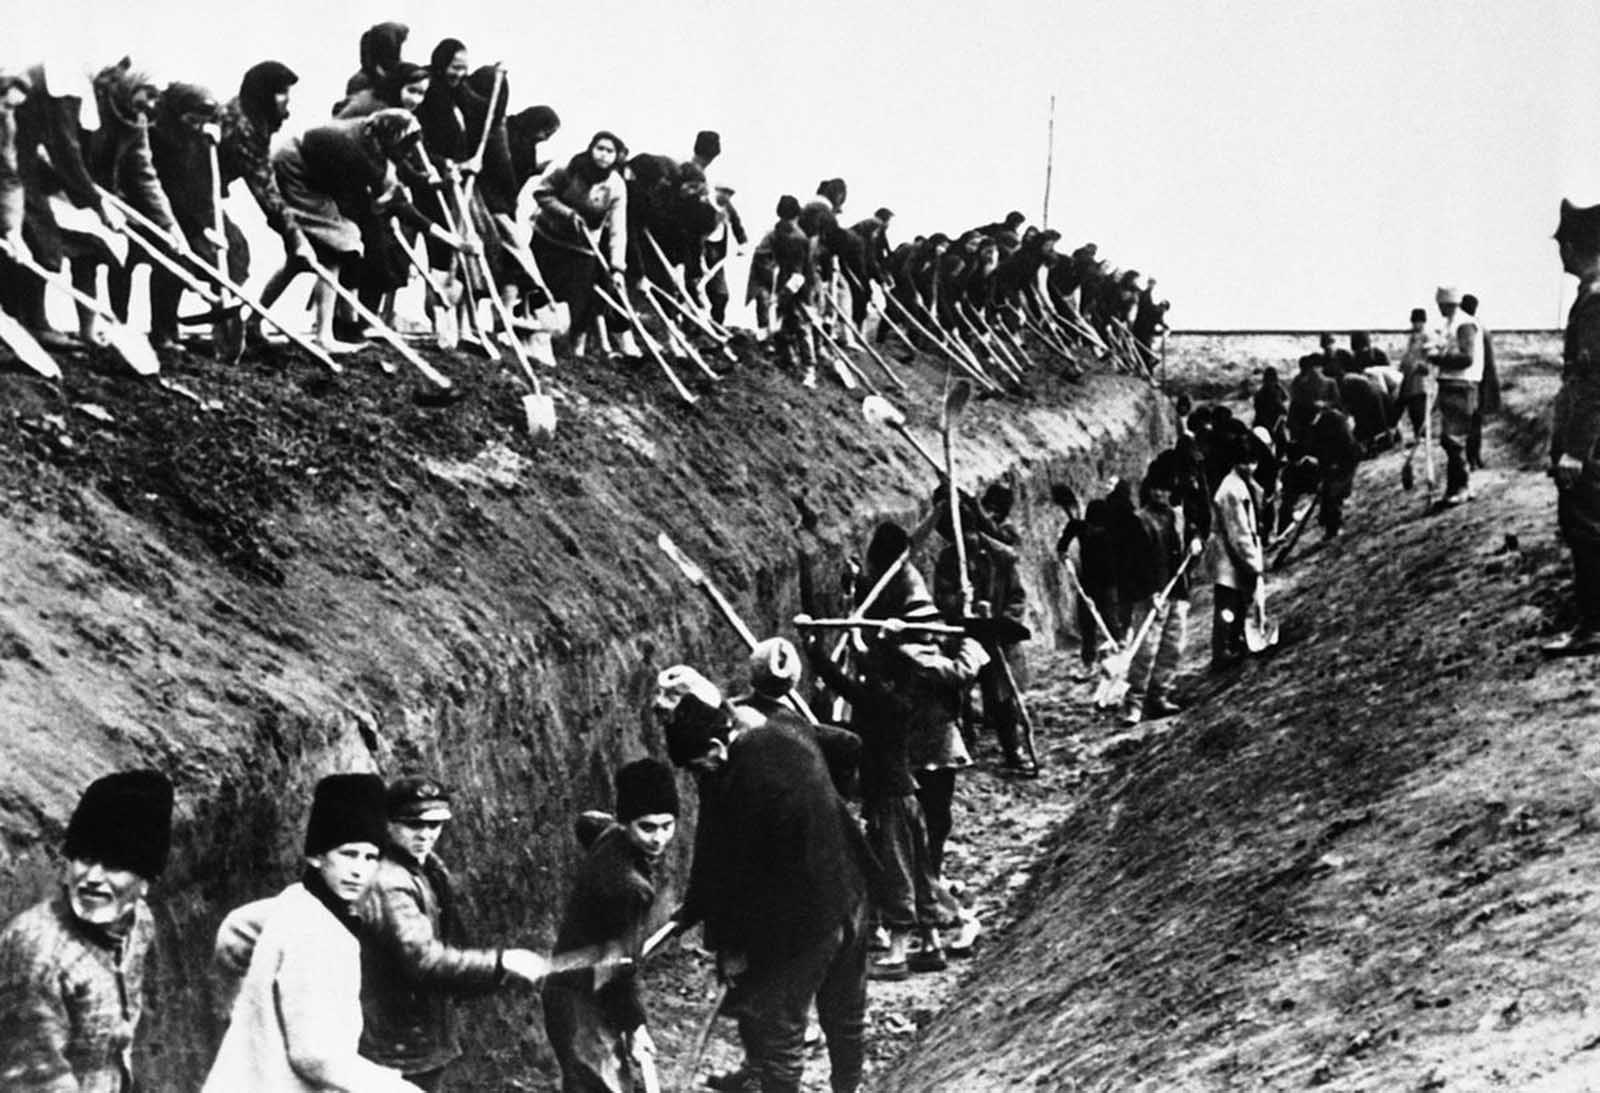 An army of Romanian civilians, men and women, both young and old, dig anti-tank ditches in a border area, on June 22, 1944, in readiness to repel Soviet armies.